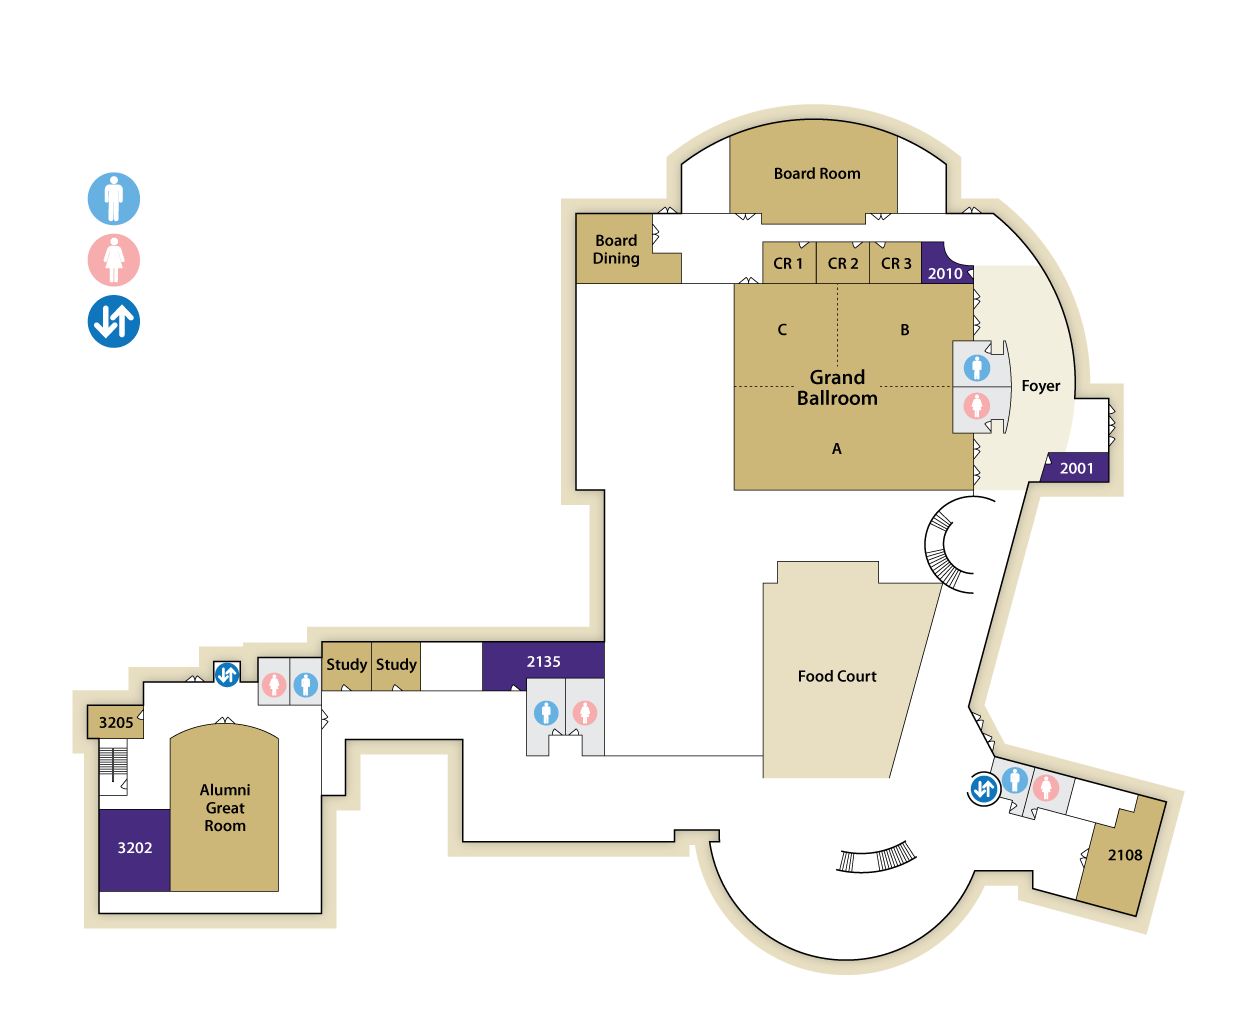 Upper Floor Building Map for Festival Conference and Student Center